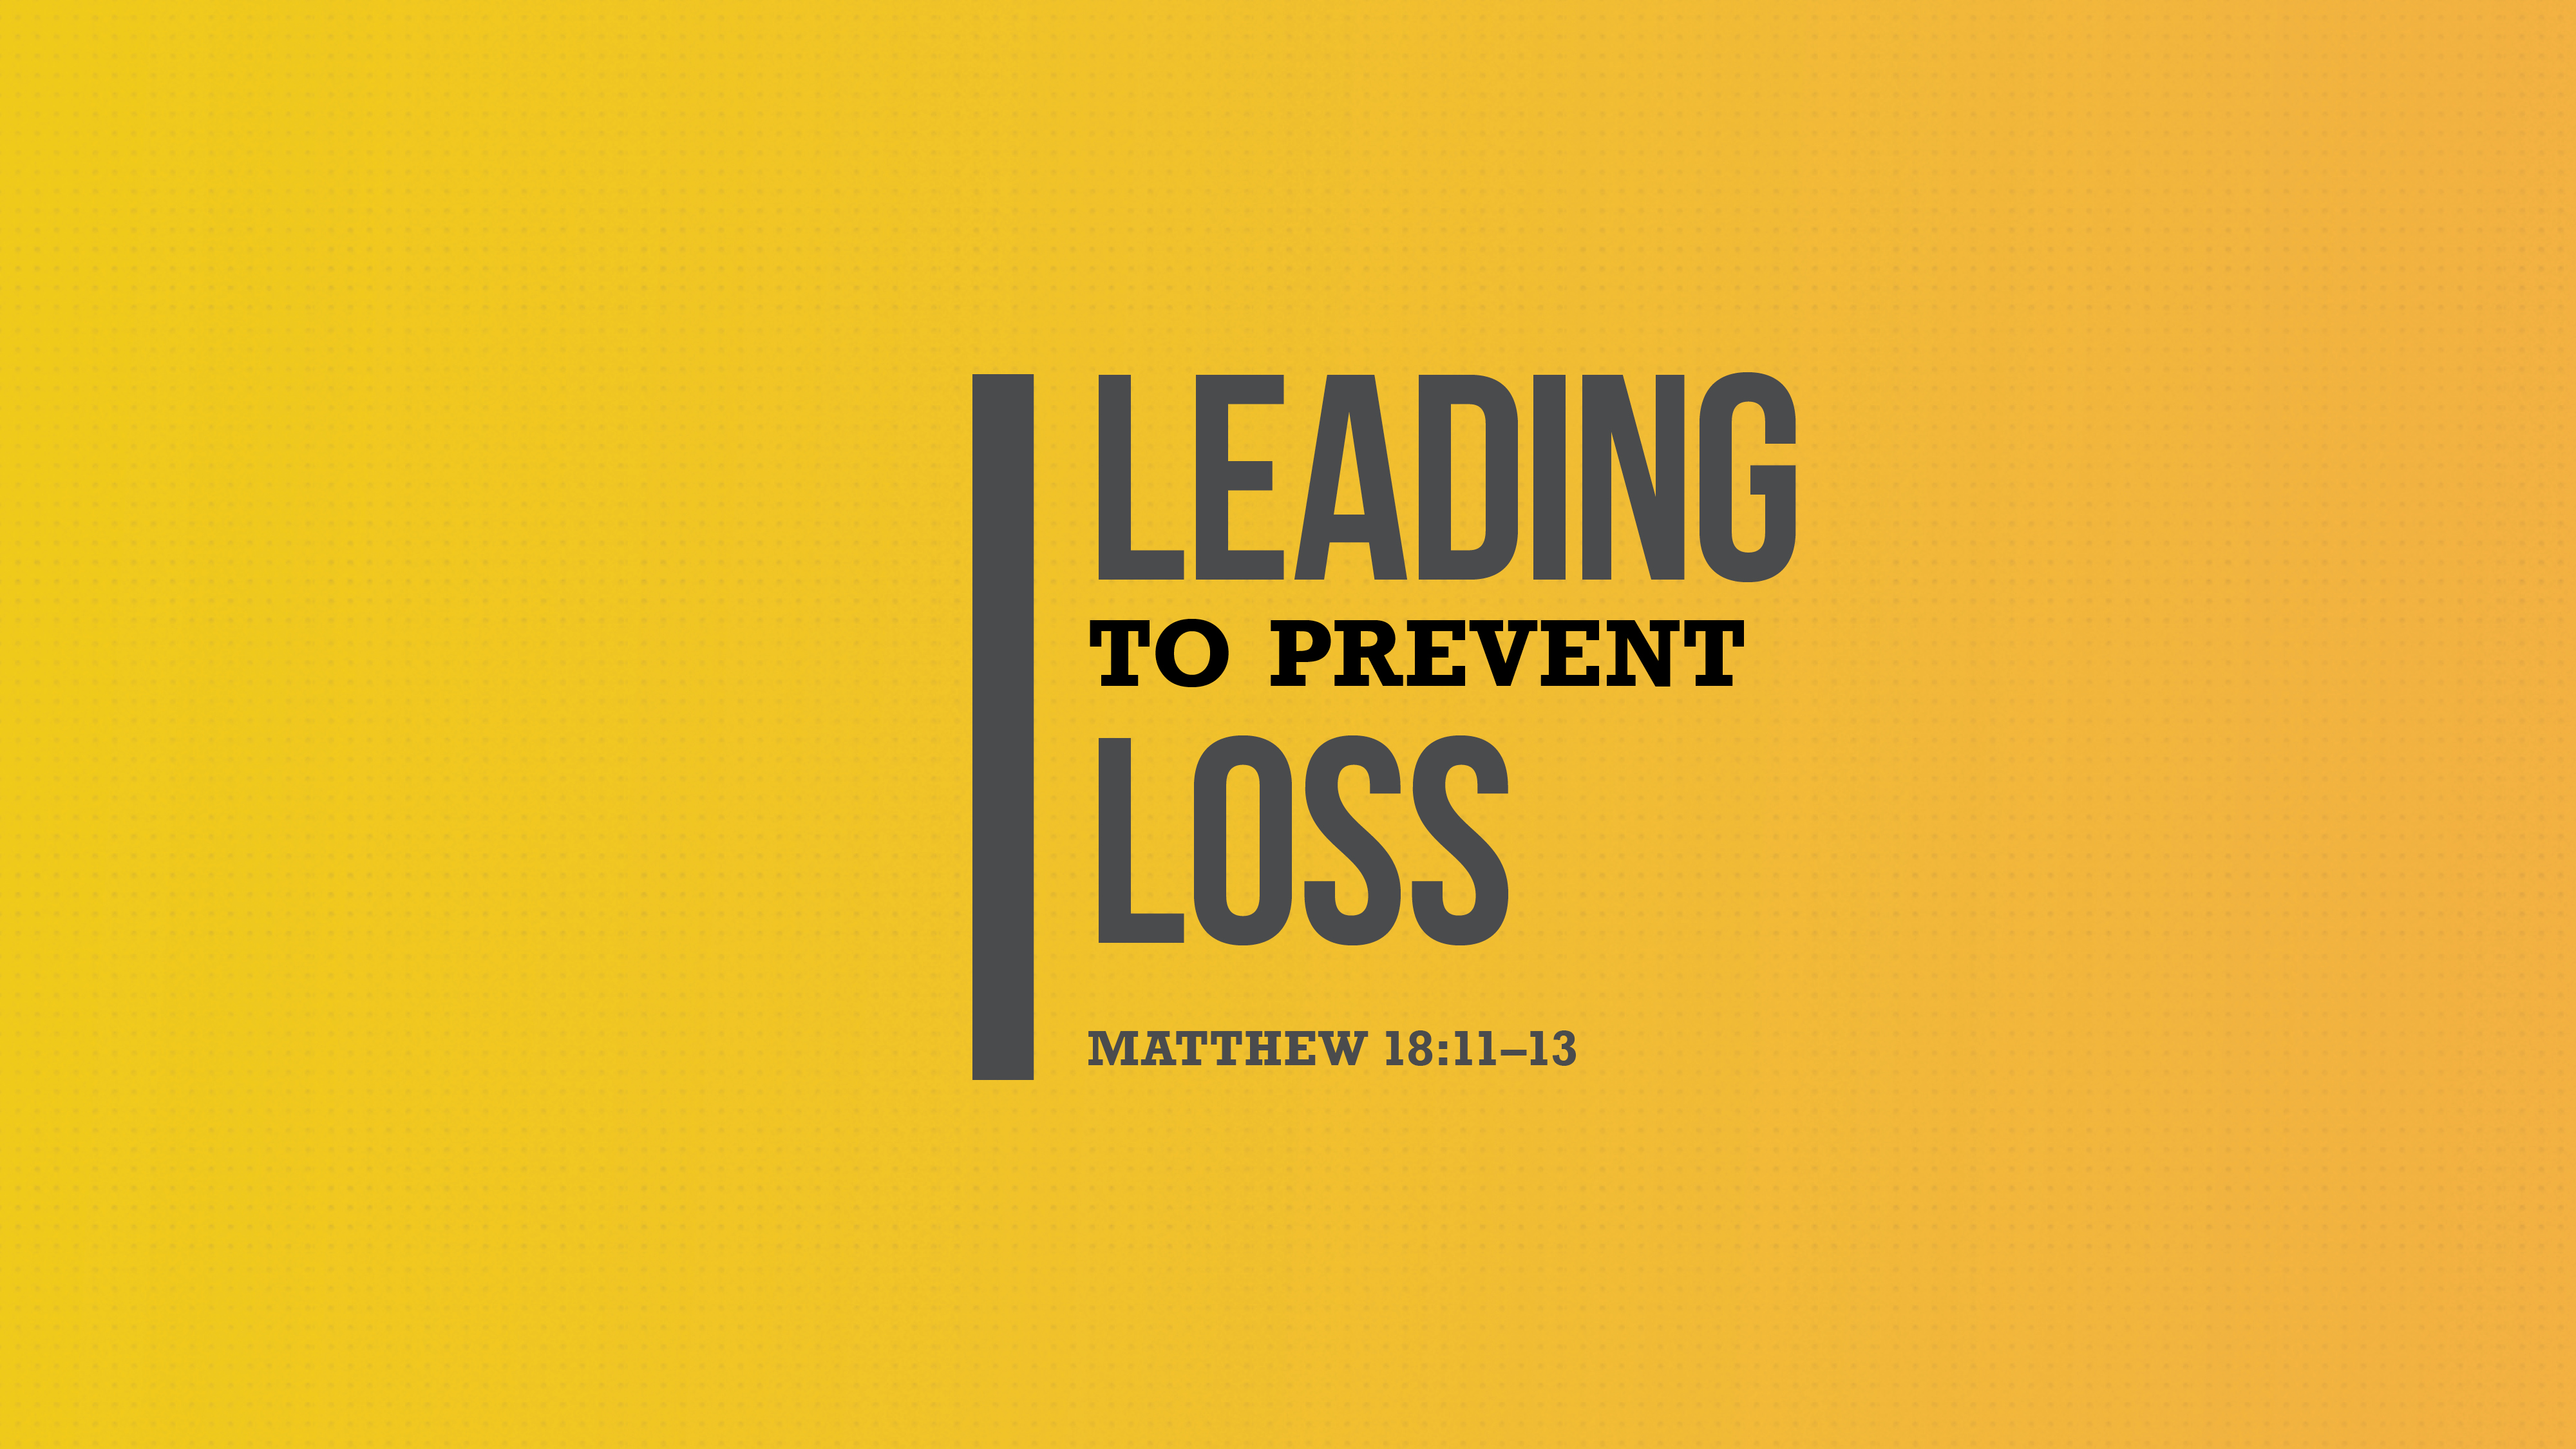 Leading to Prevent Loss